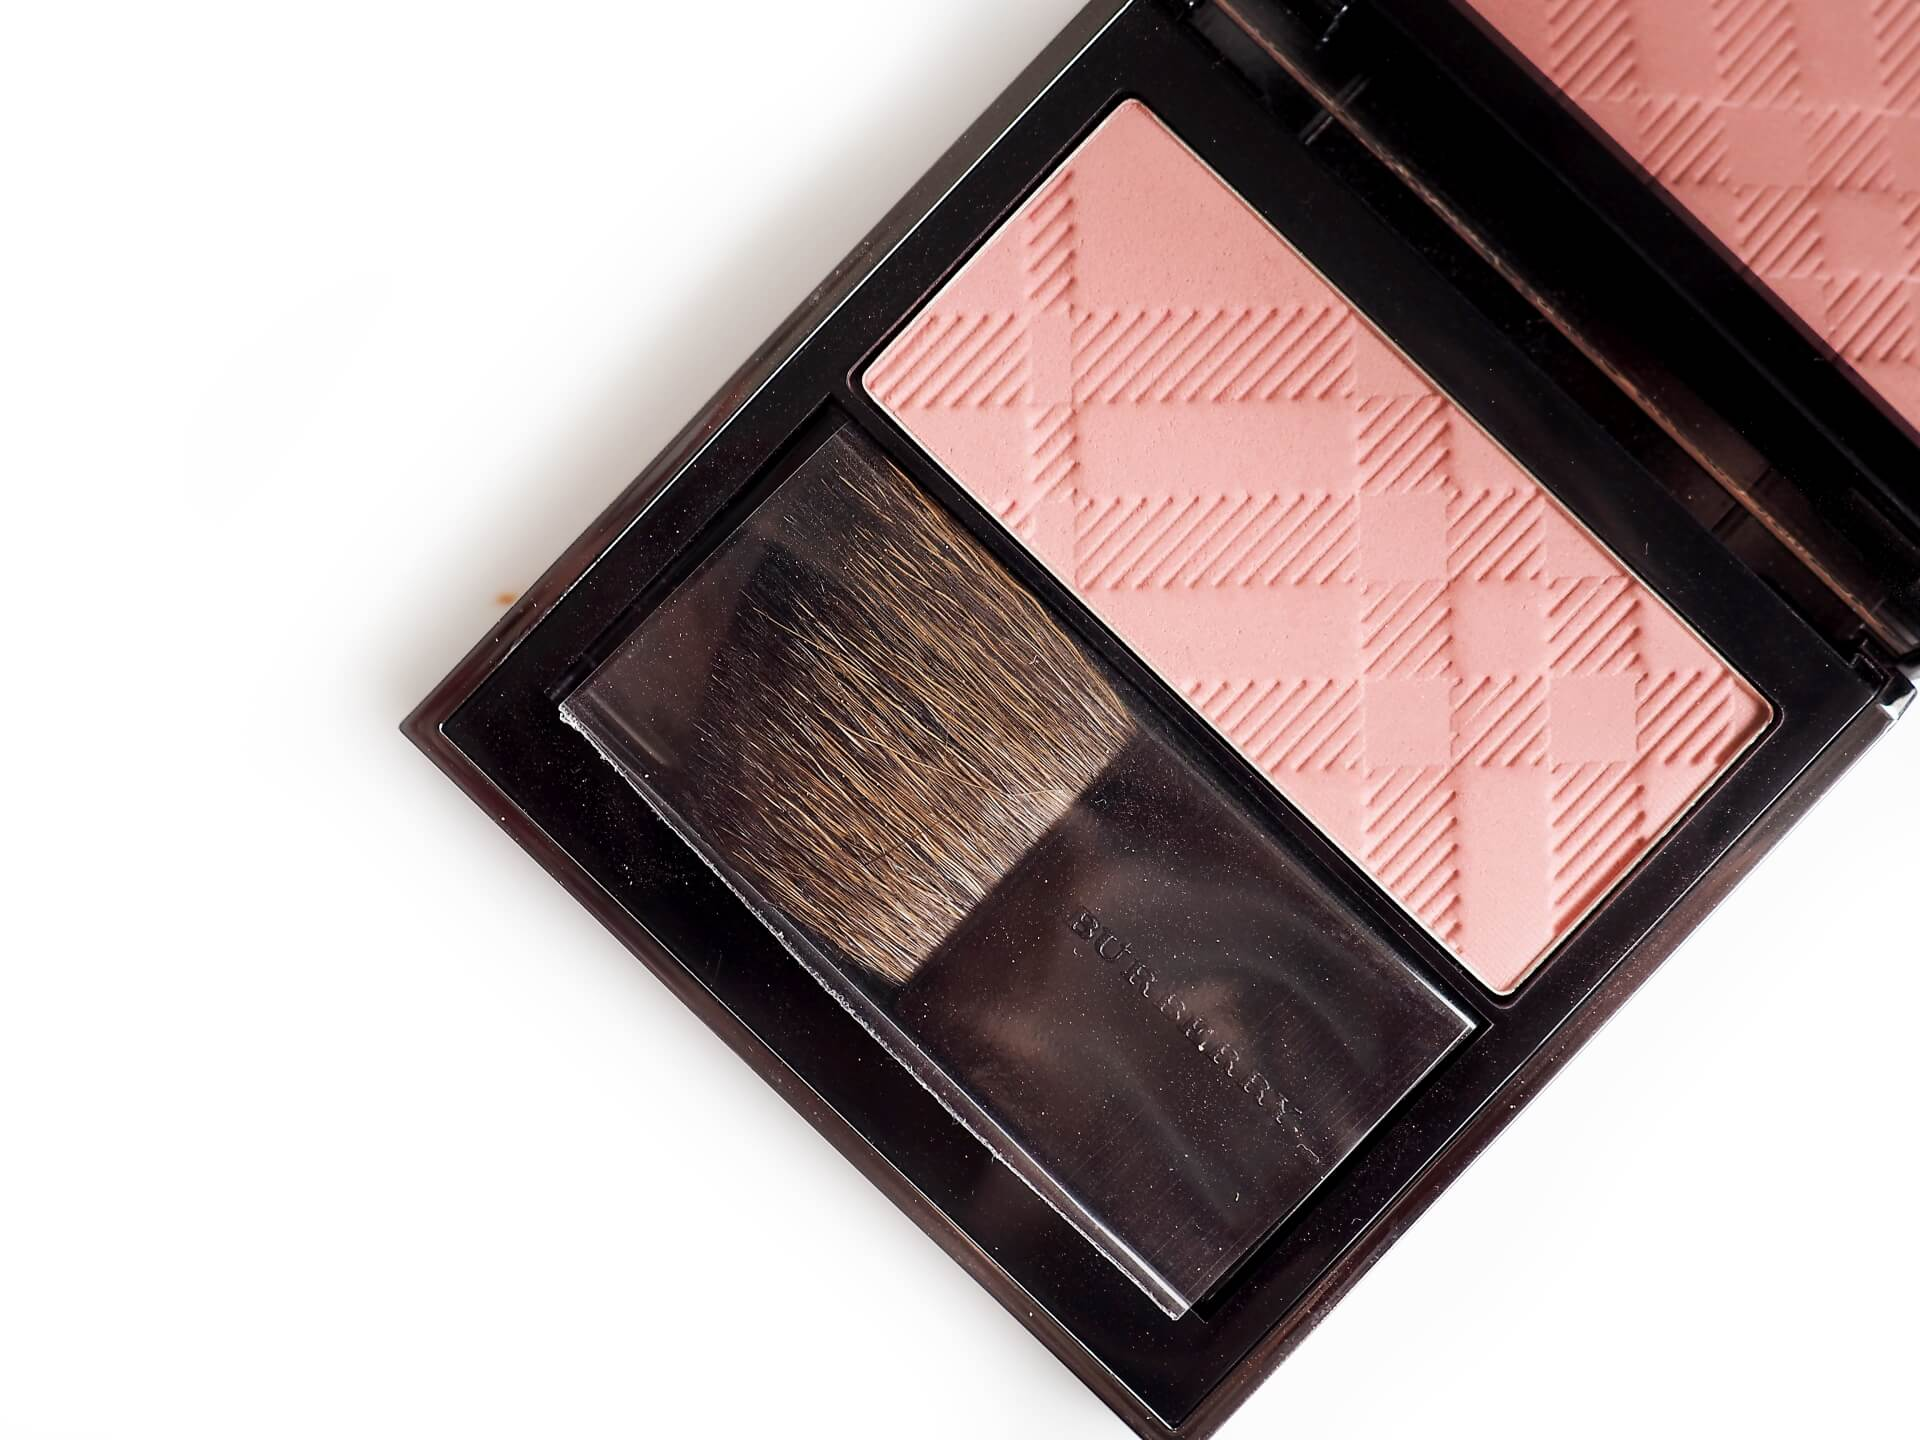 recenzje Burberry Cameo Light Glow Blush